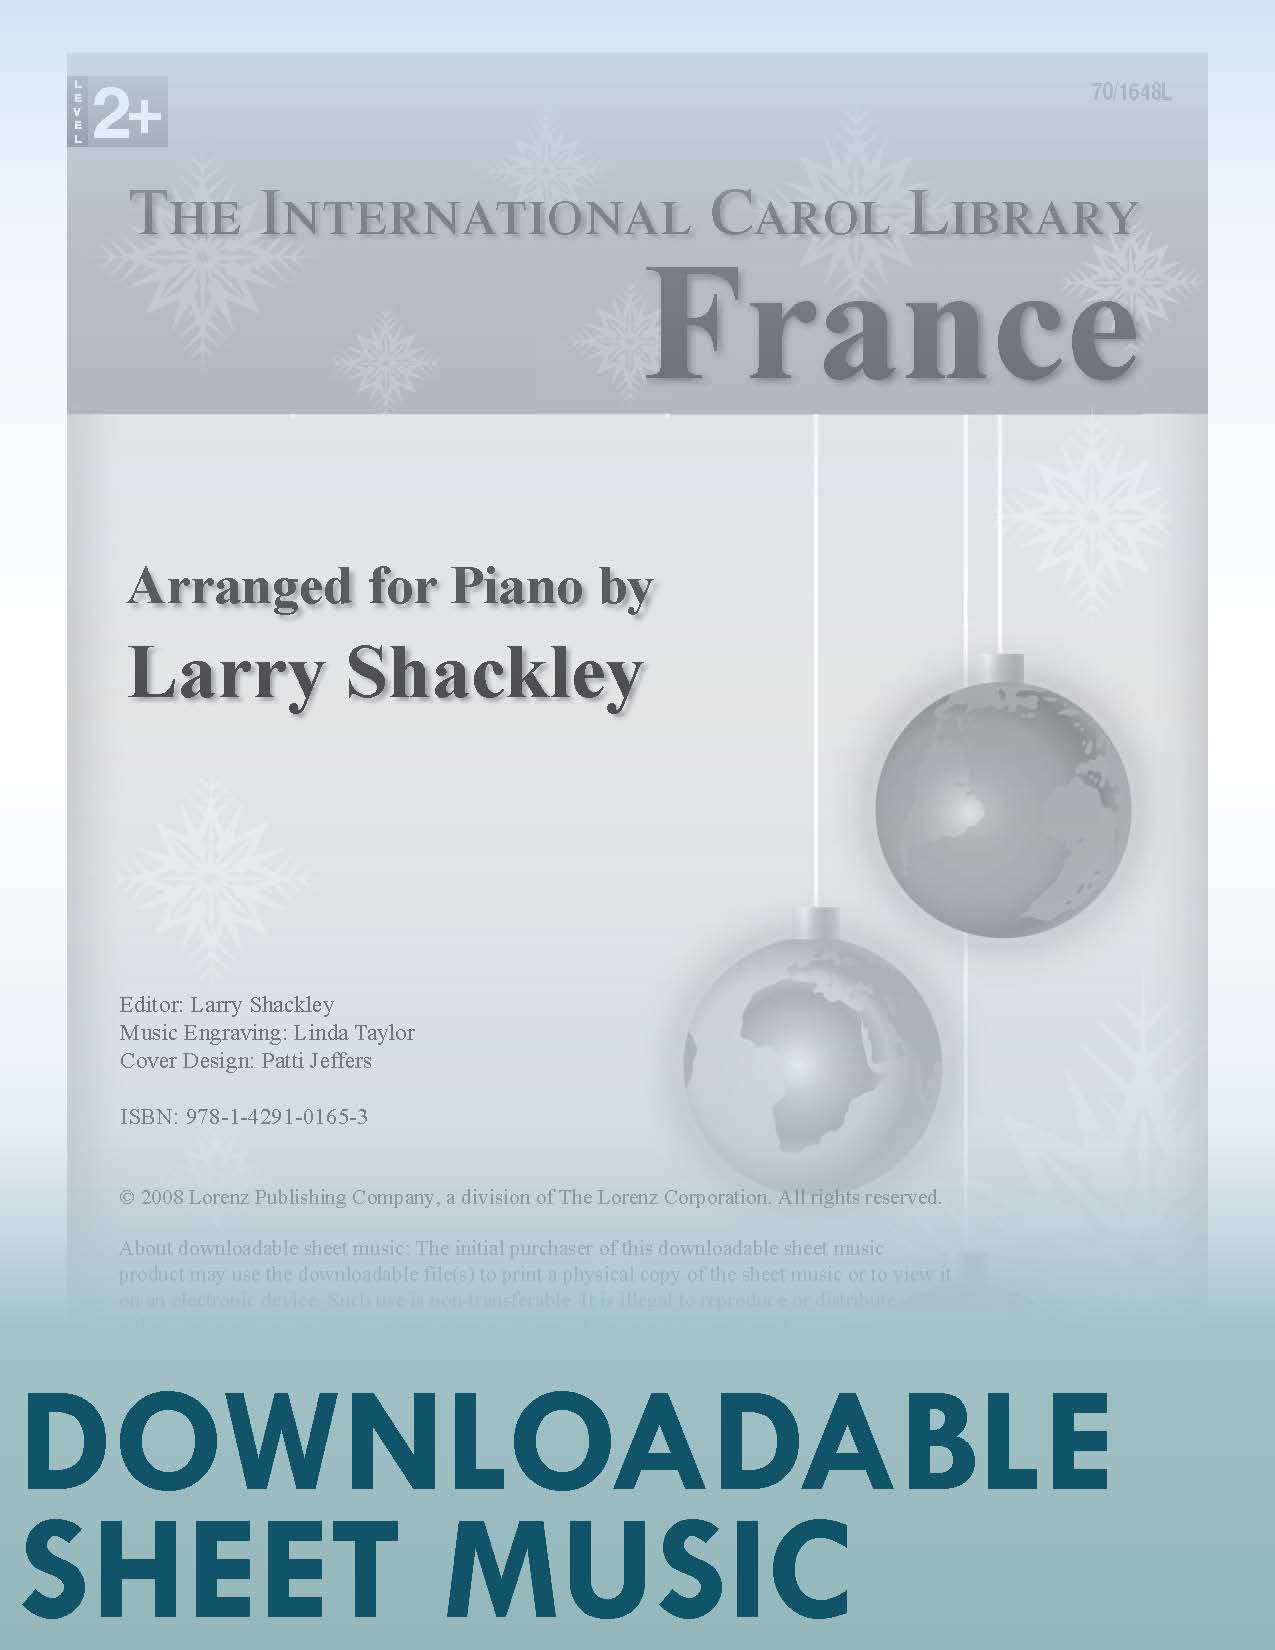 The International Carol Library - France - Digital Download